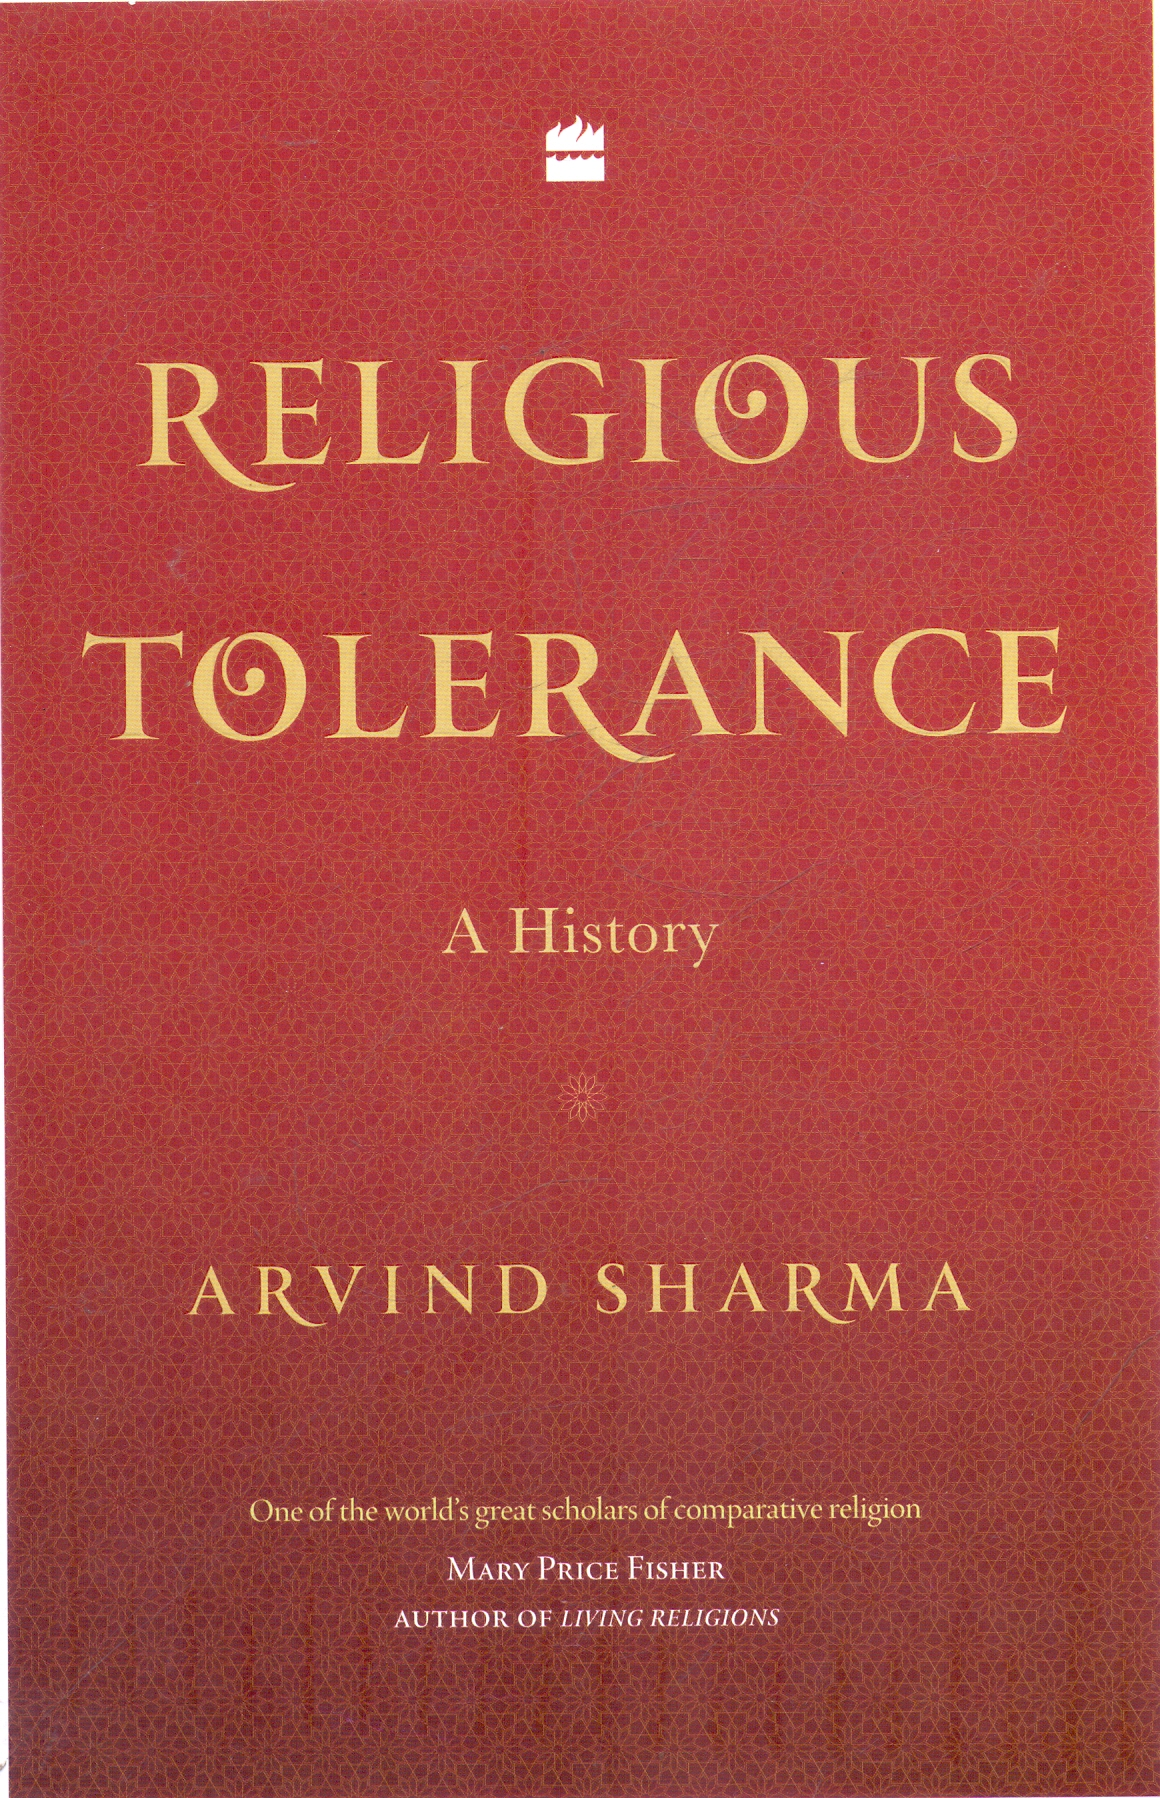 Religious Tolerance: A History